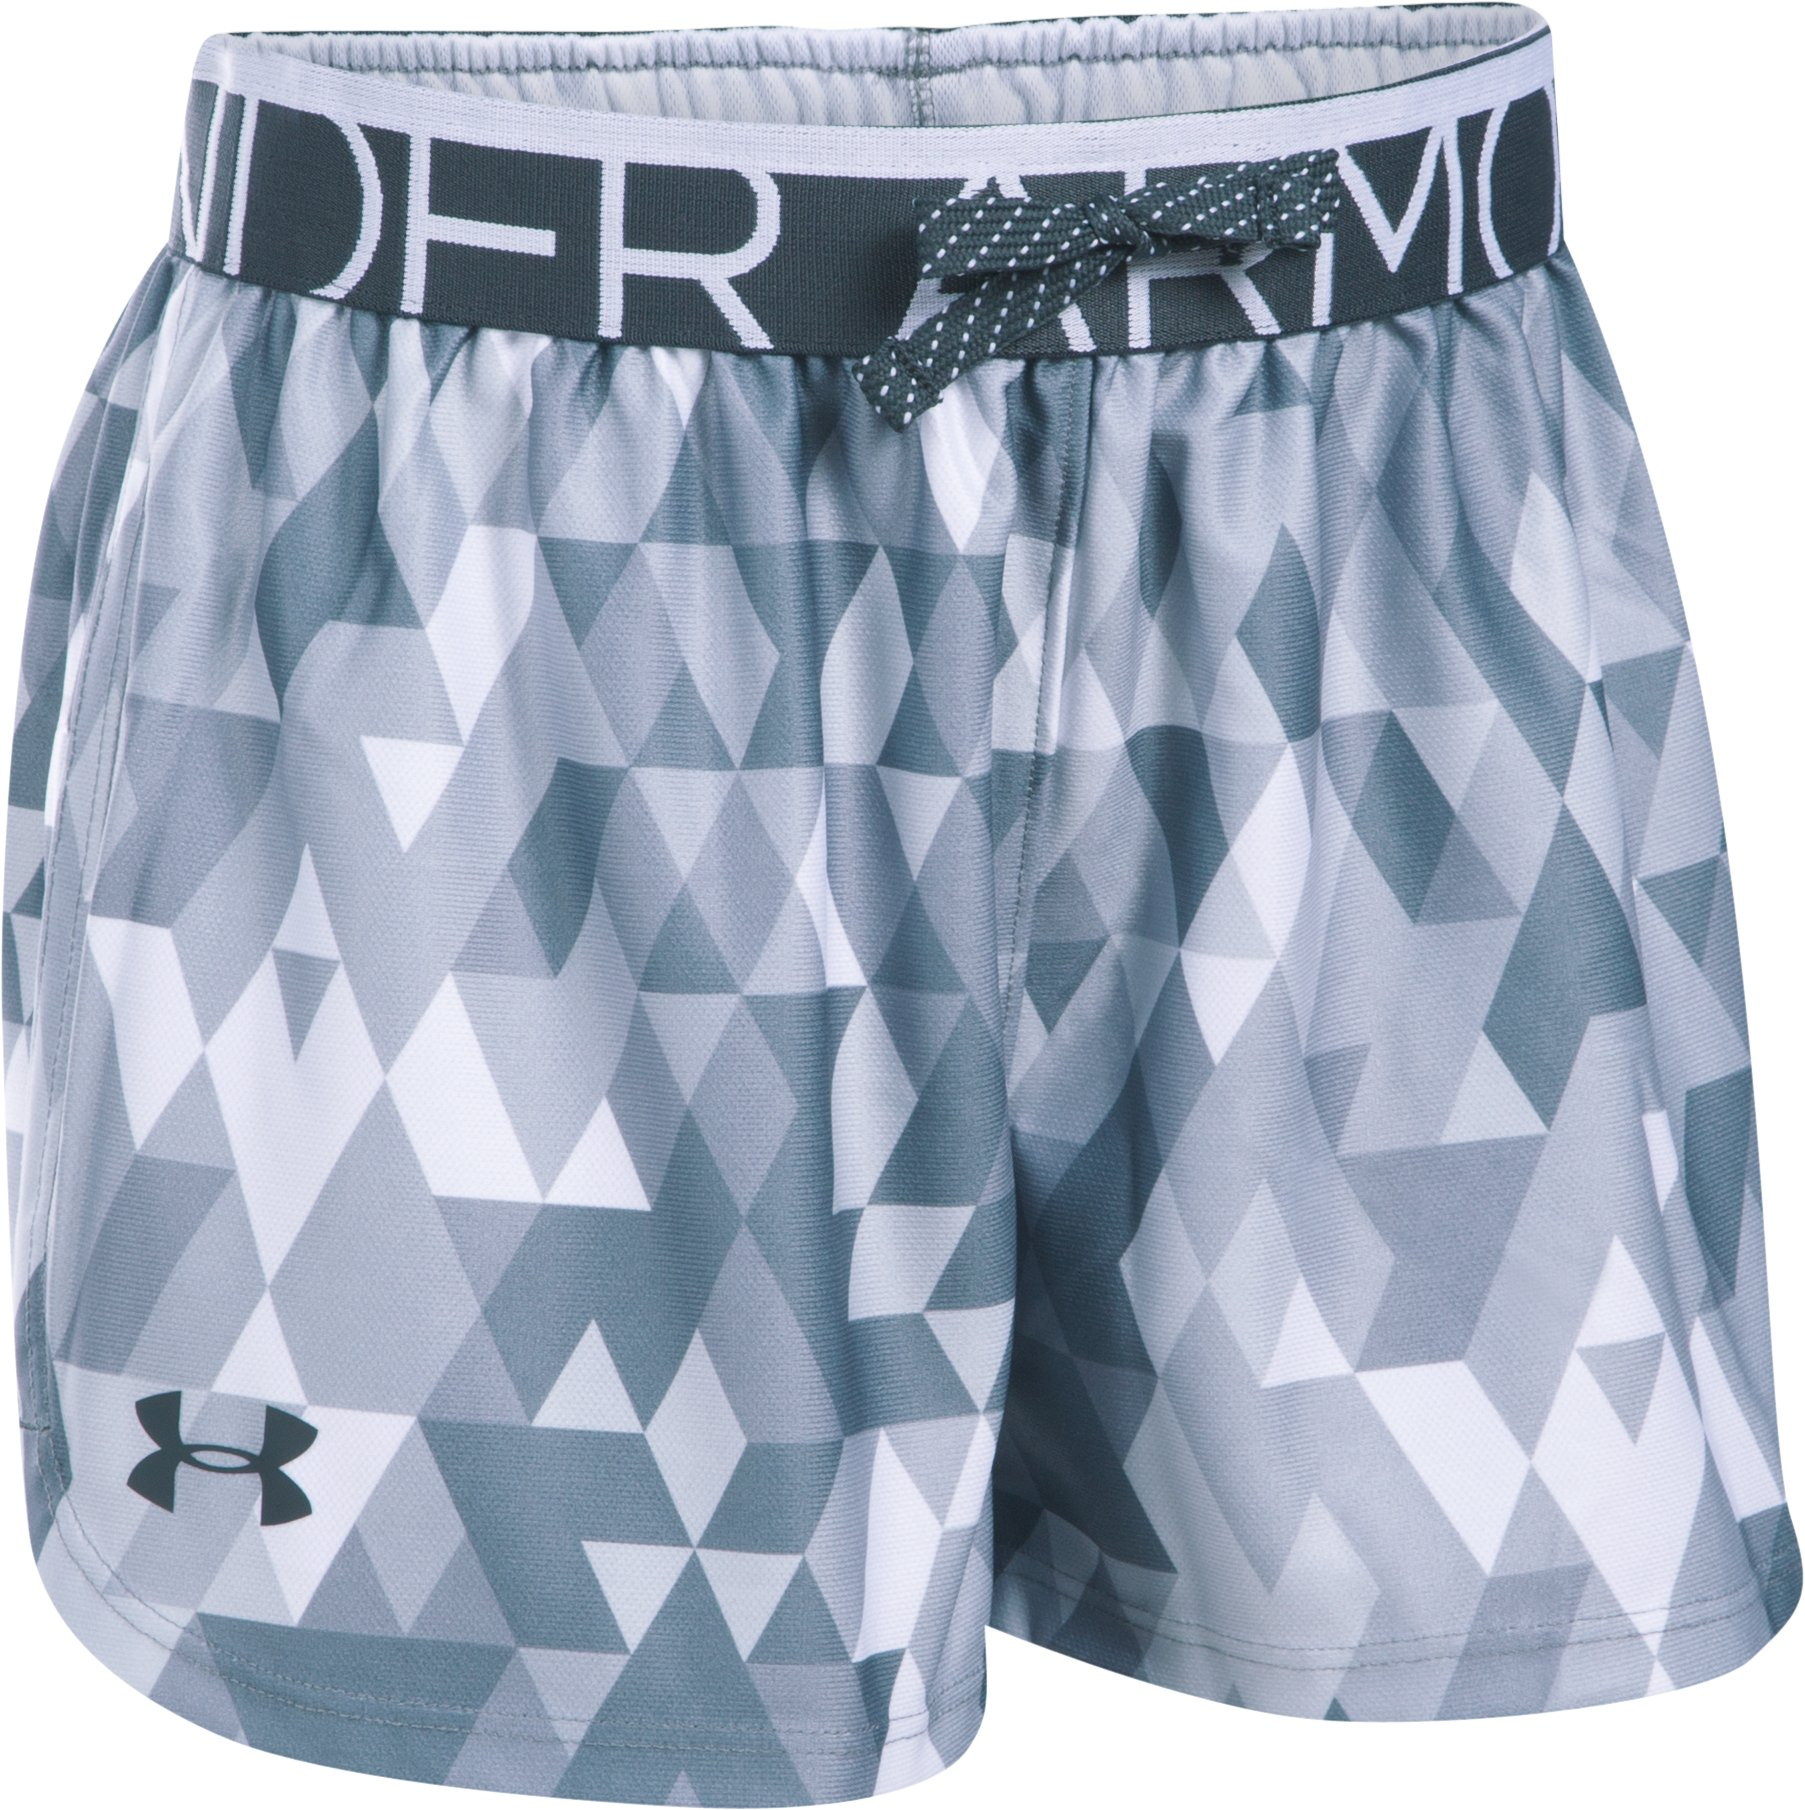 Girls' UA Printed Play Up Shorts, White